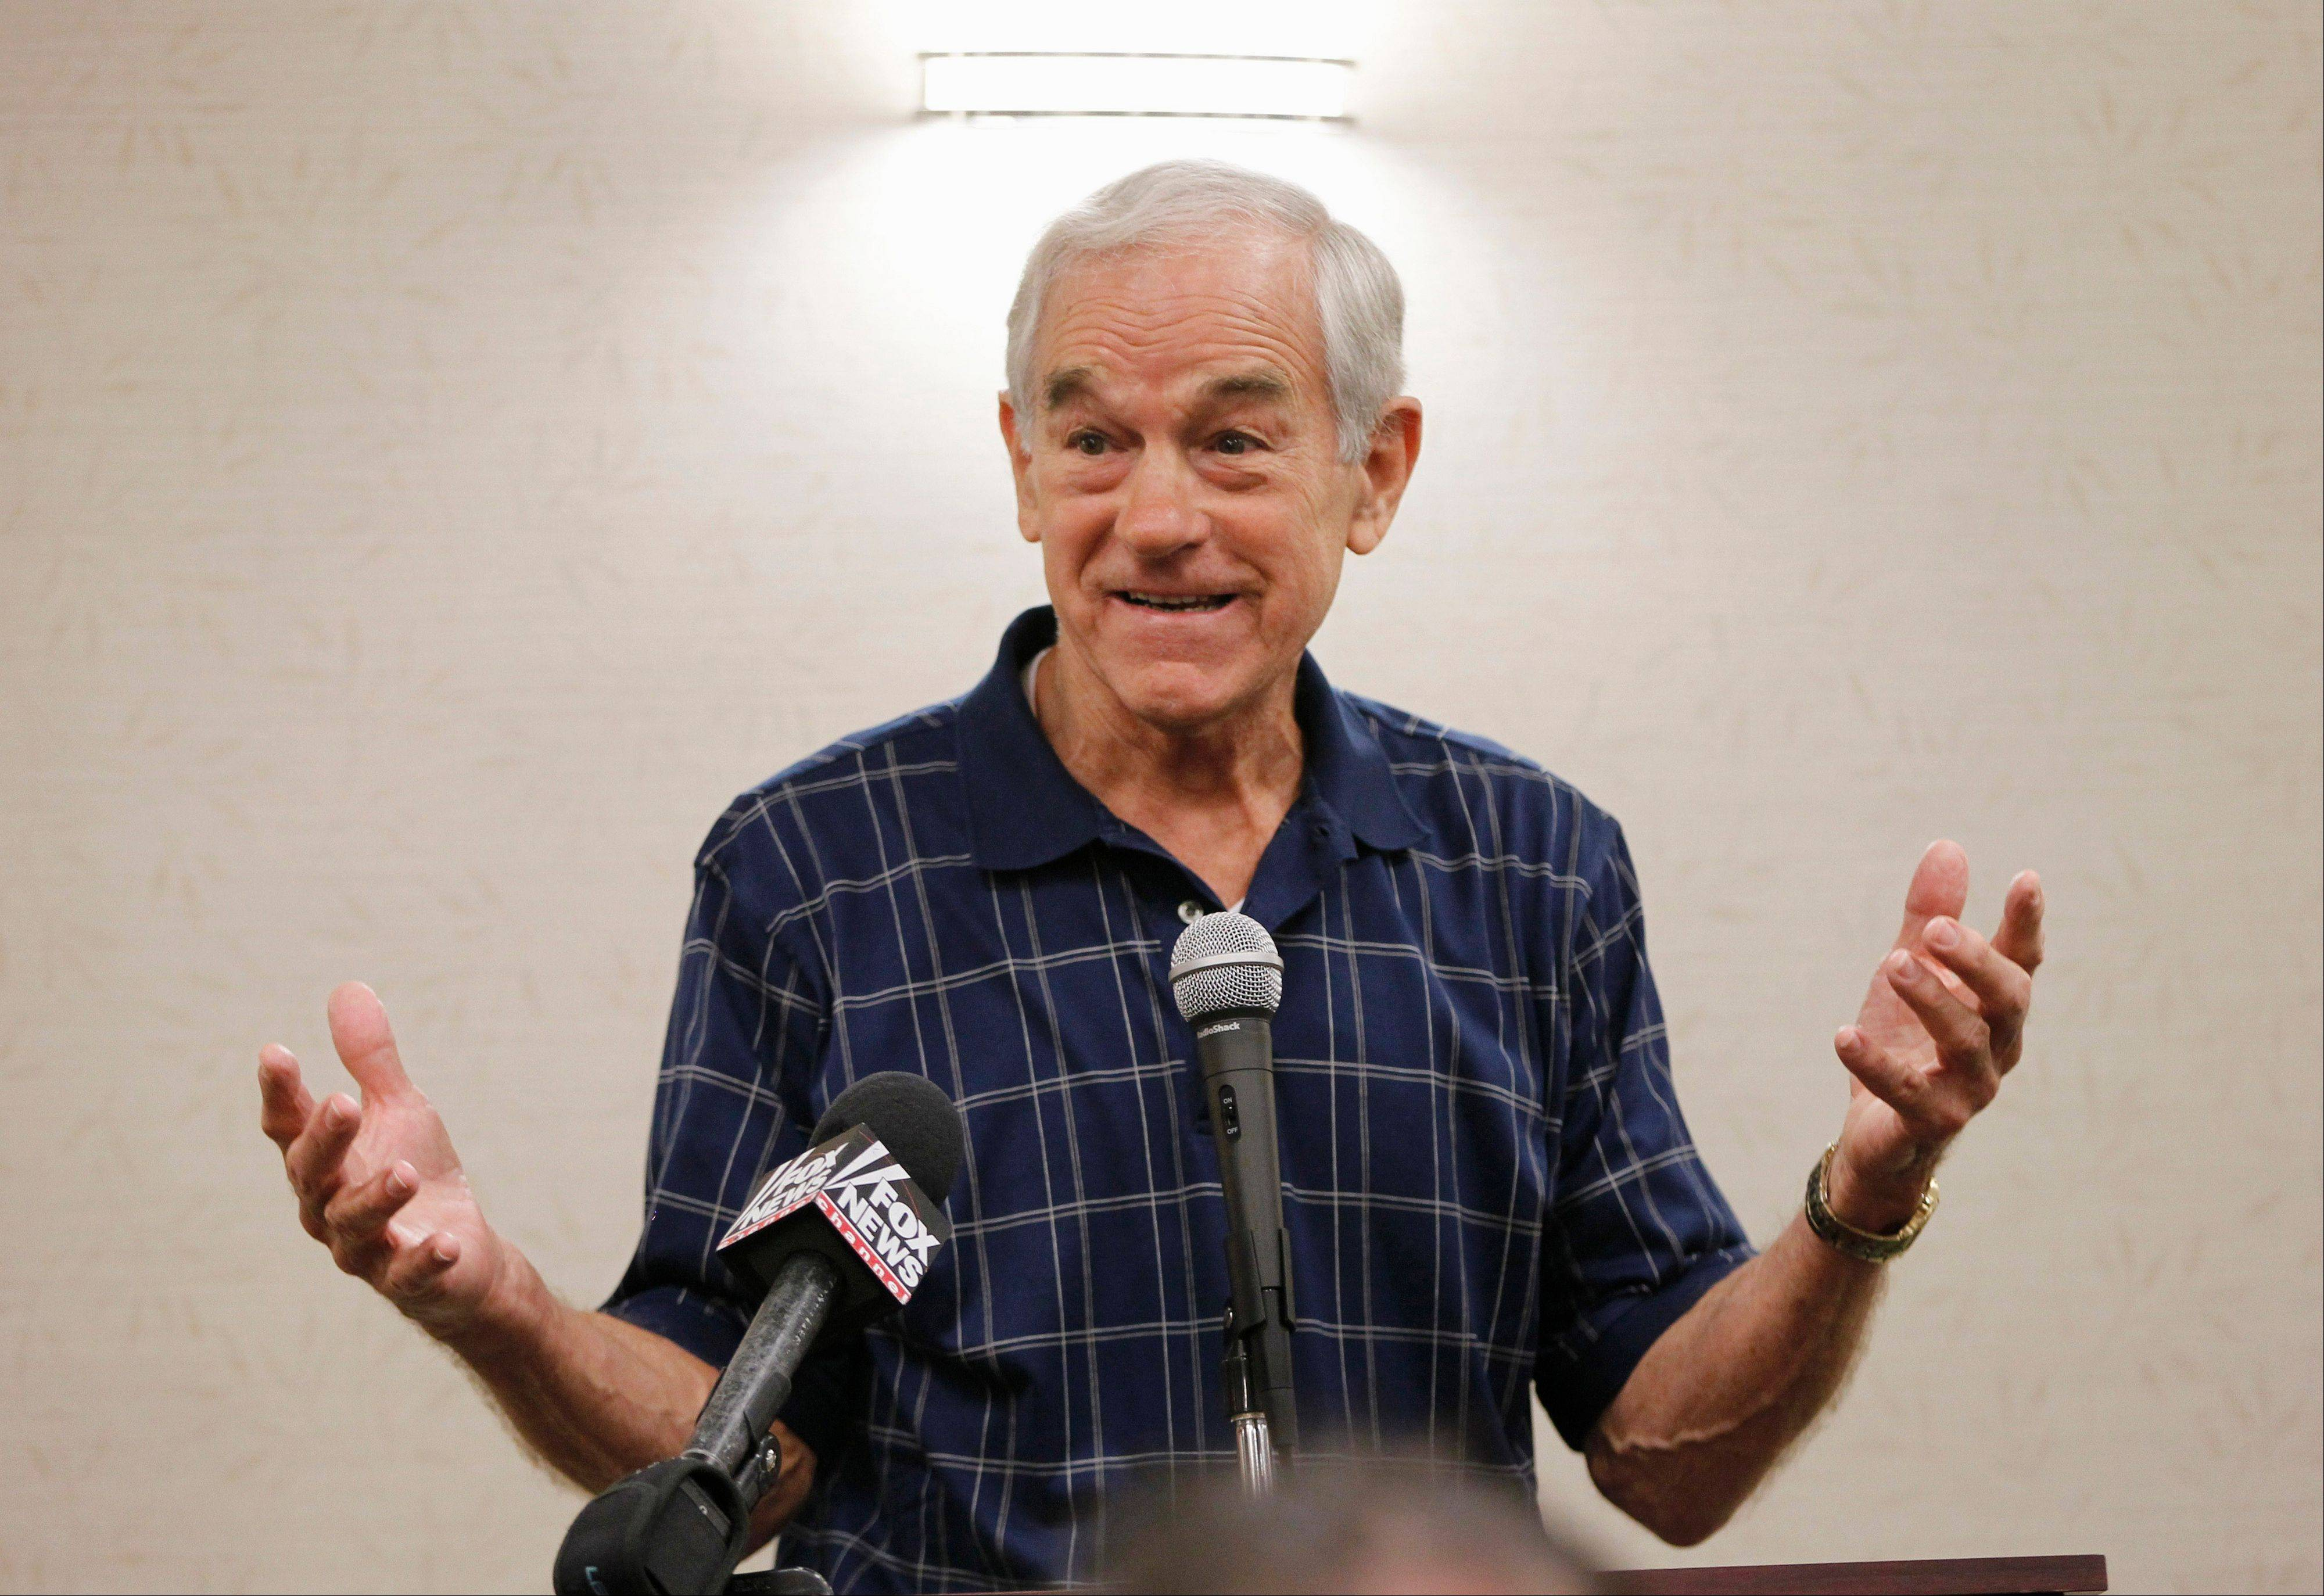 Texas Congressman Ron Paul speaks at a campaign event at a hotel in Ames, Iowa, on Thursday.